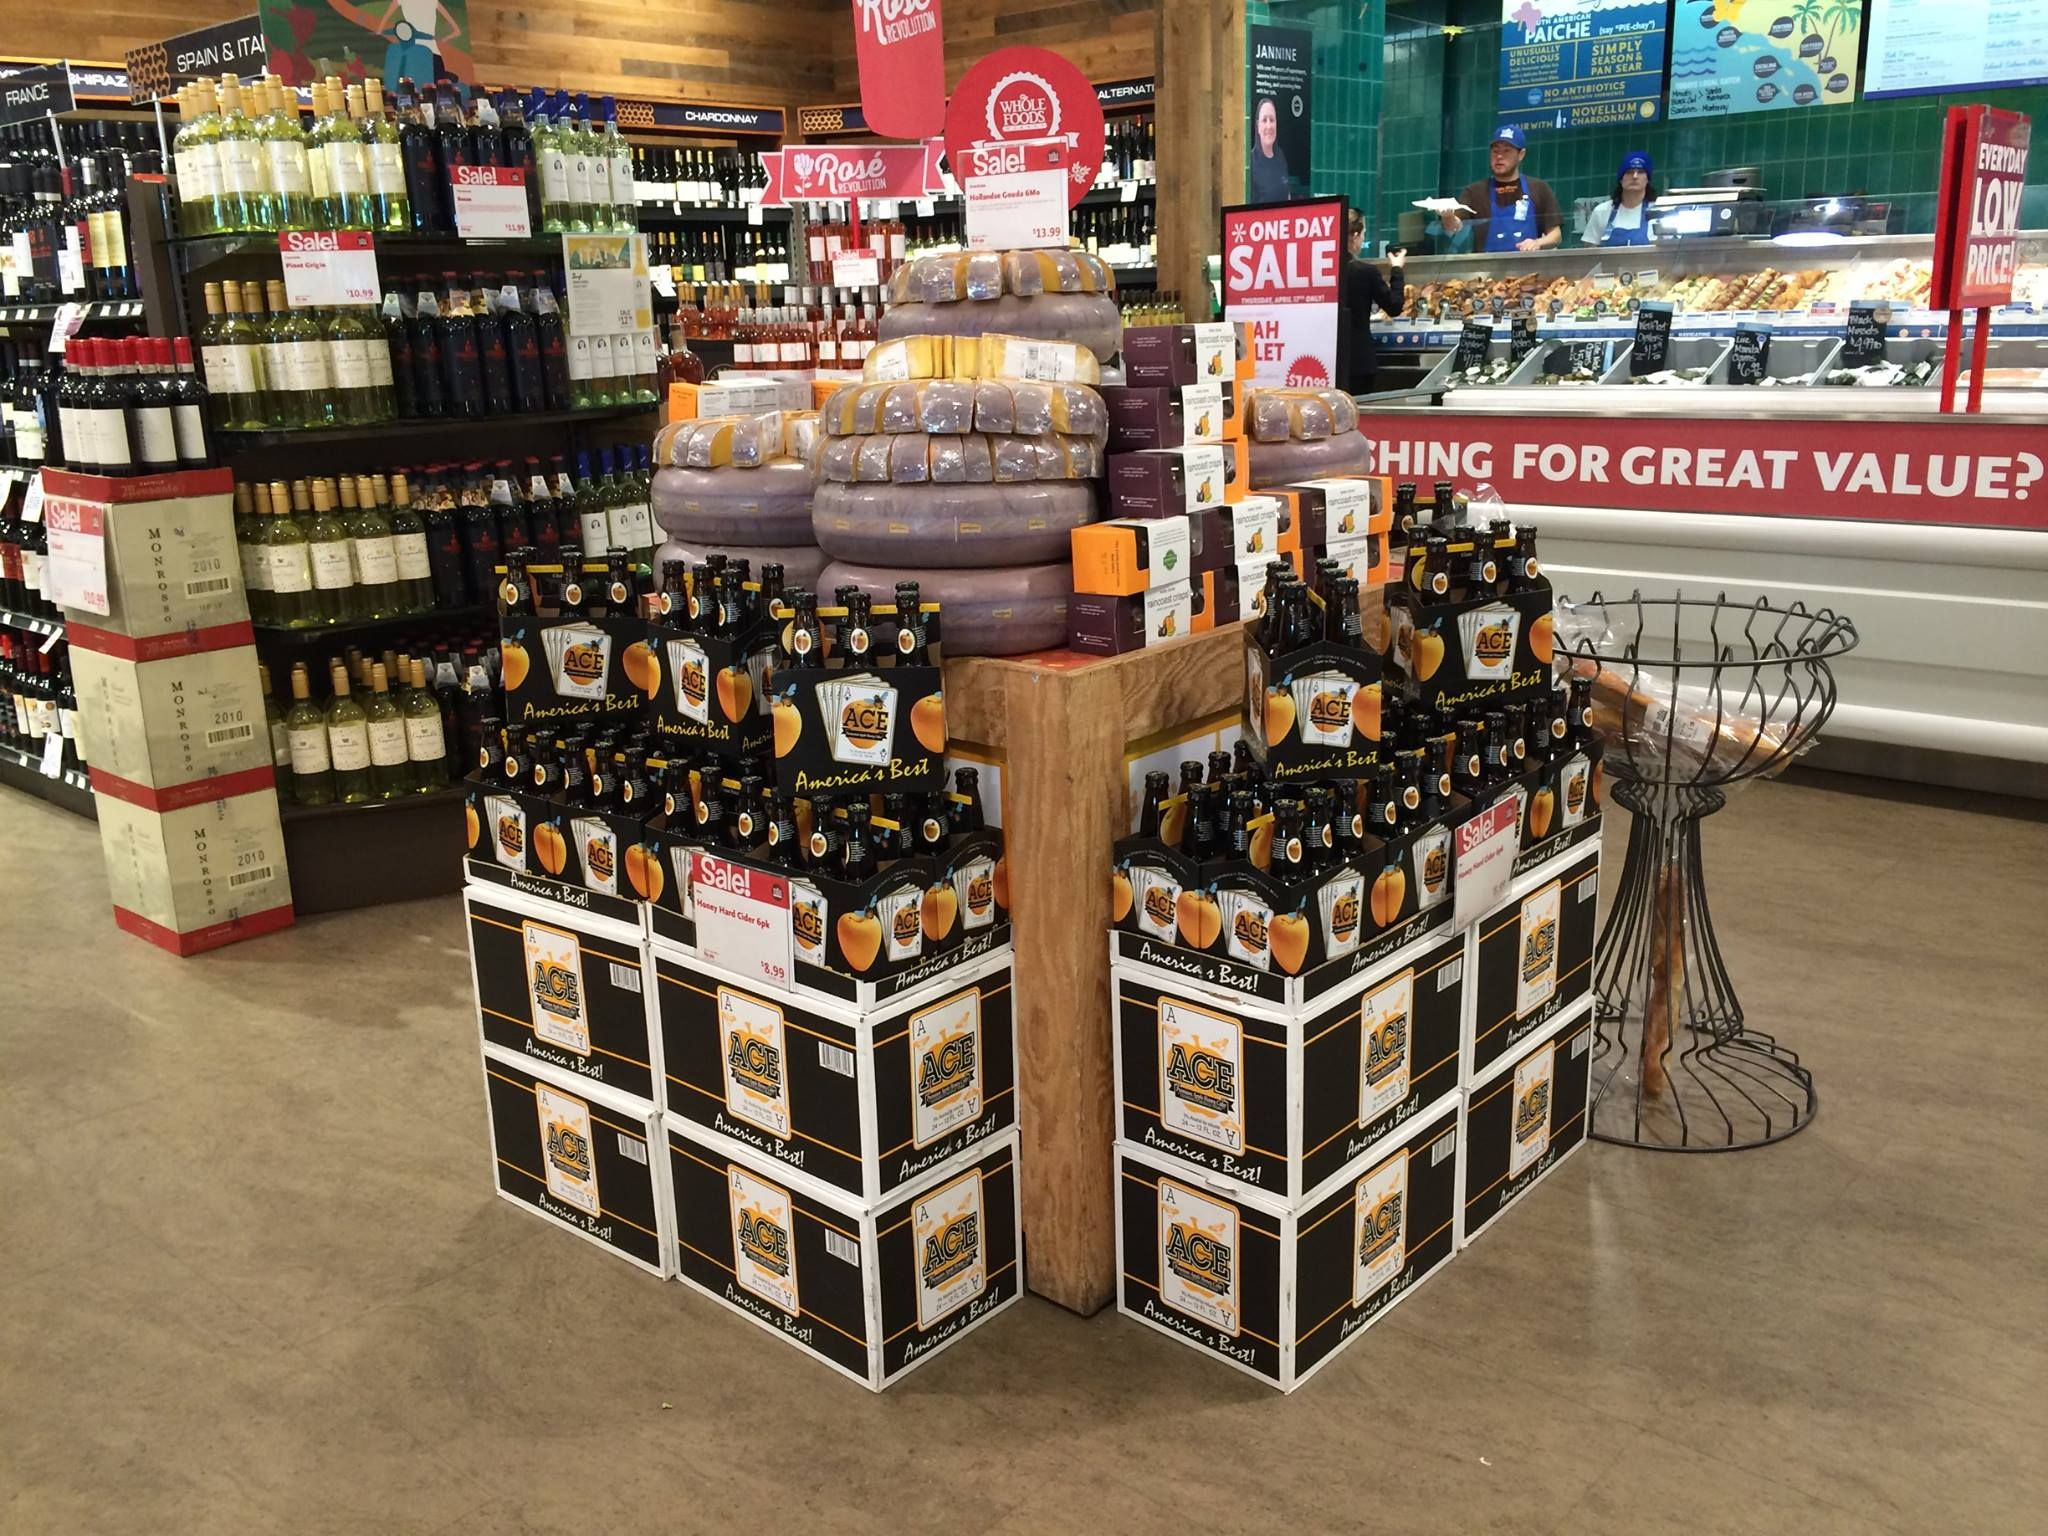 Check out this awesome display at the whole foods in la